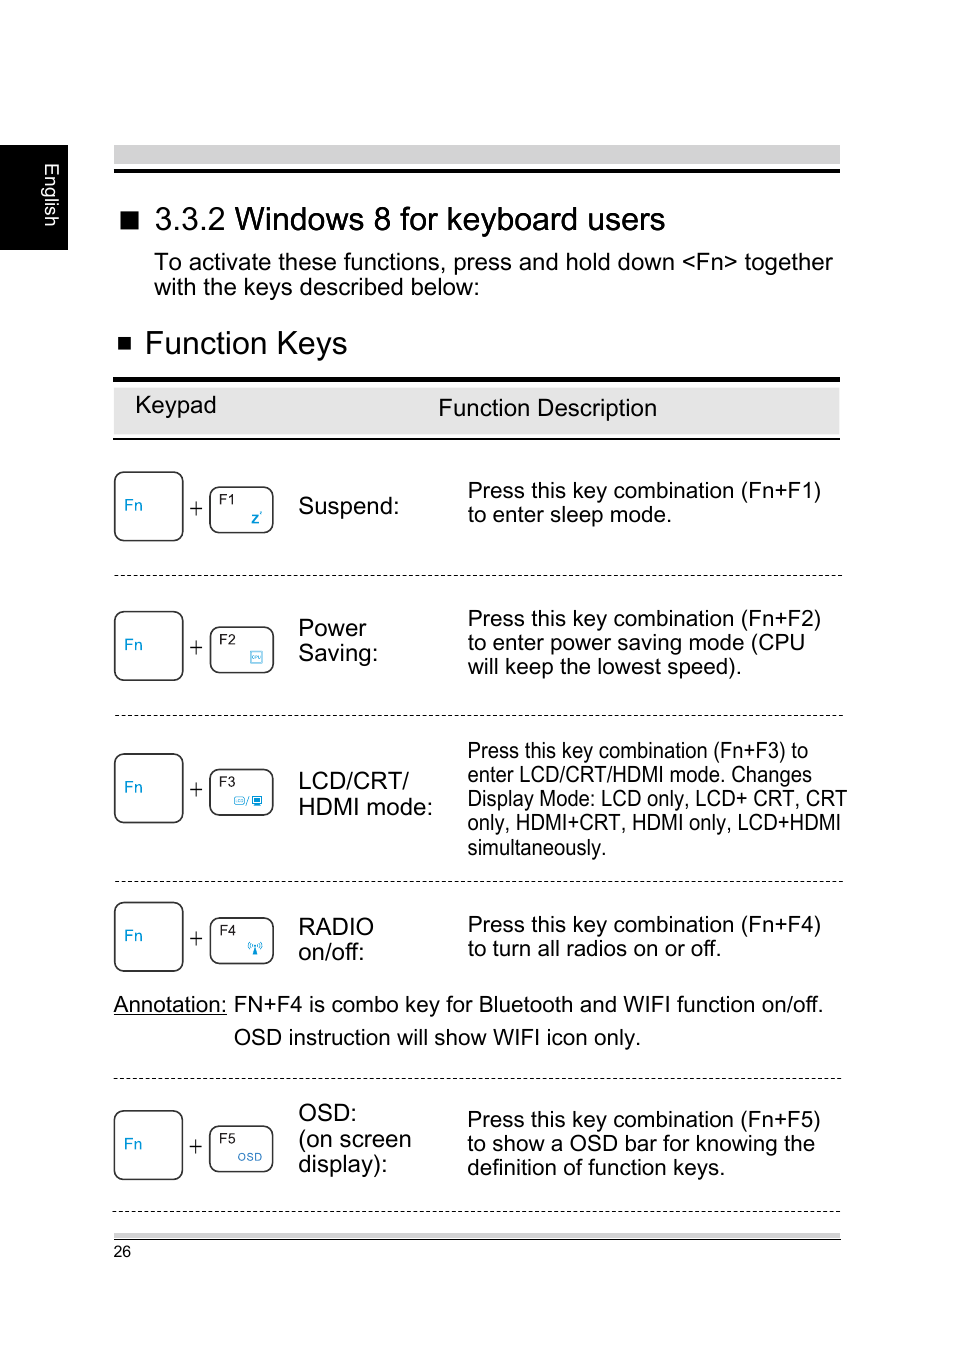 2 windows 8 for keyboard users, Function keys | chiliGREEN A15CR03 User  Manual | Page